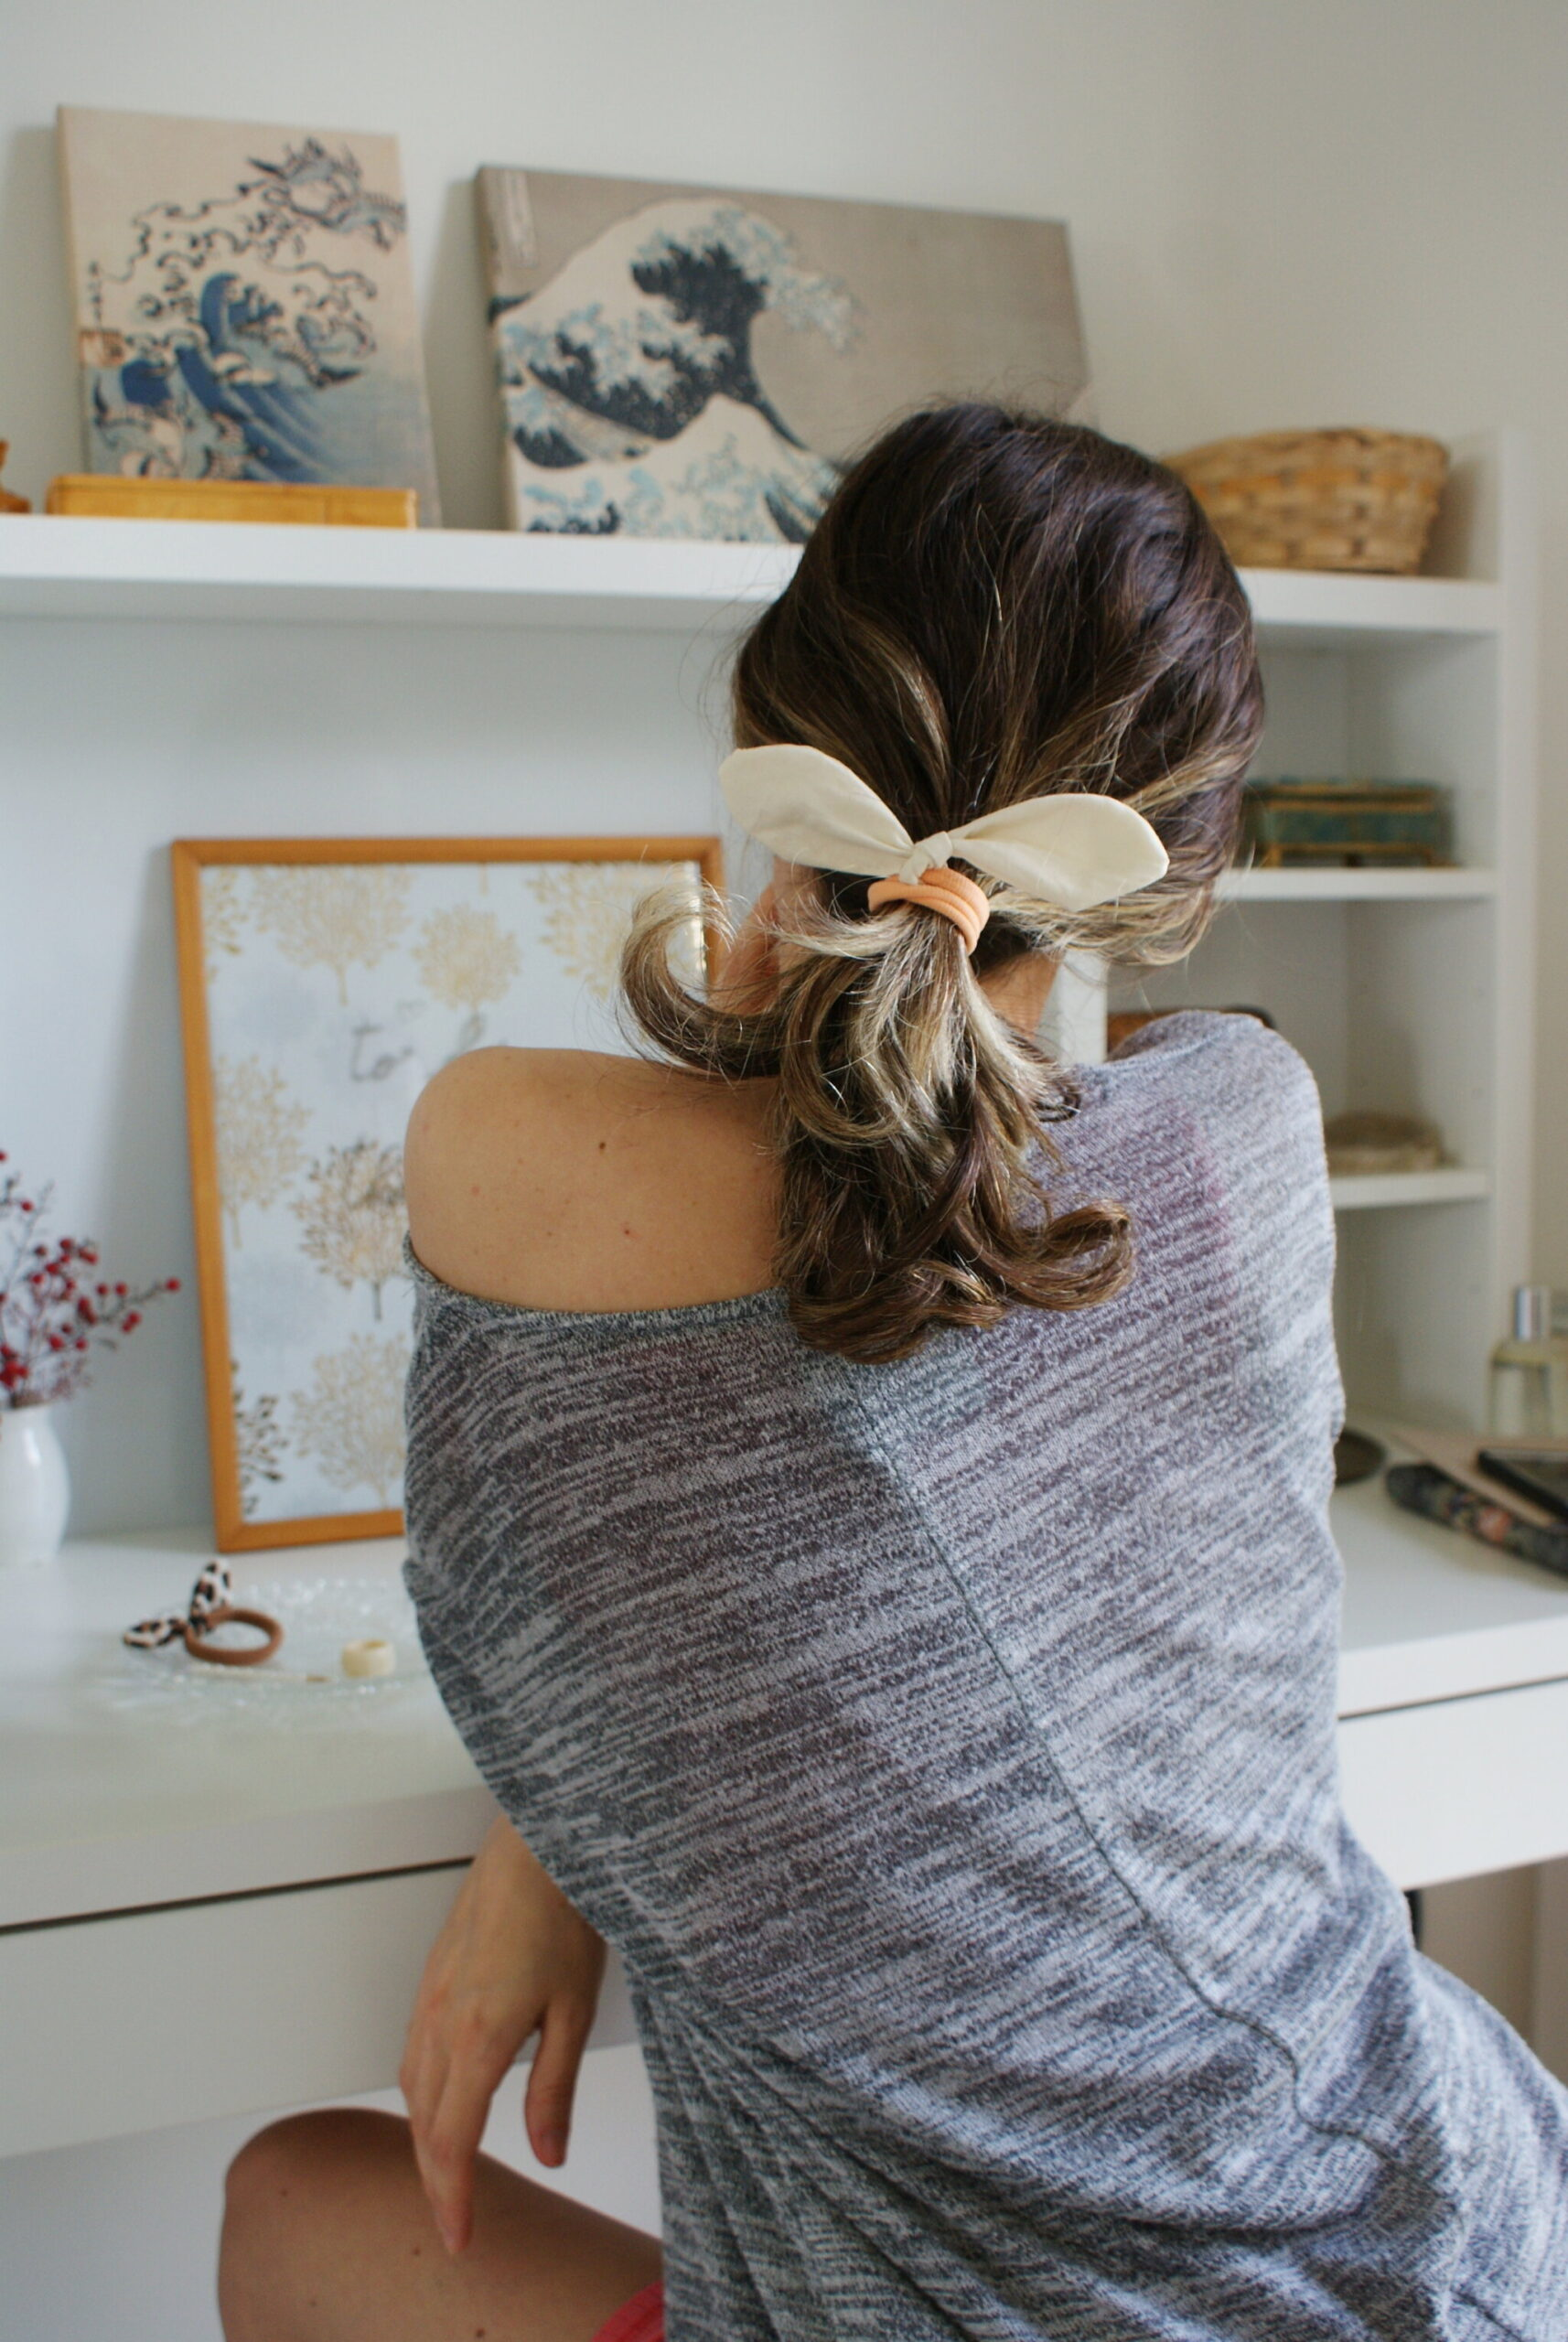 diy bunny ear bow knot hair ties scrunchies tutorial how make home sewing easy handmade project francinesplaceblog